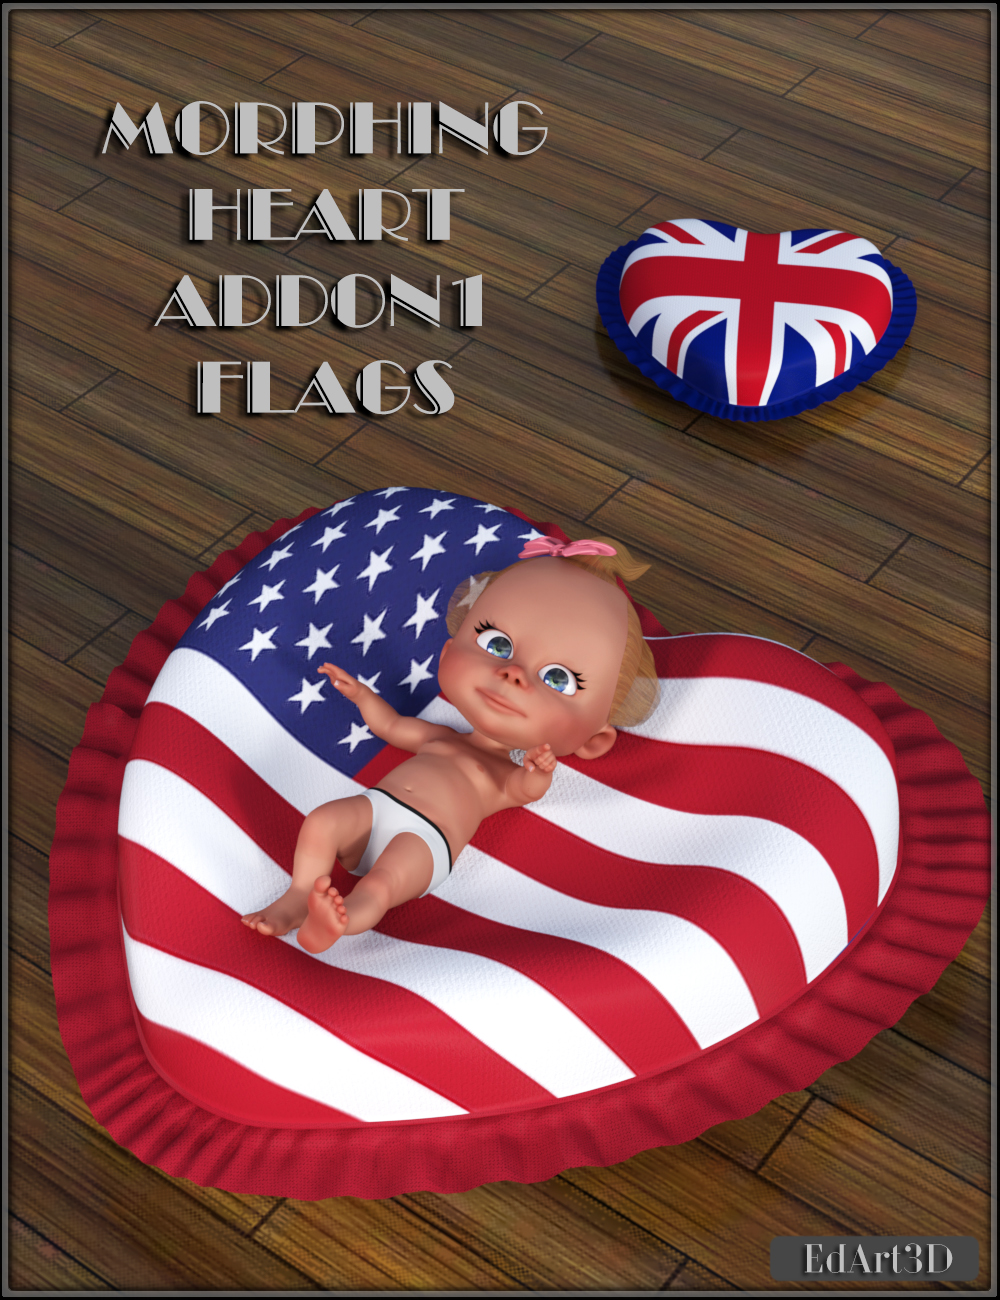 Morphing Heart AddOn1 Flags